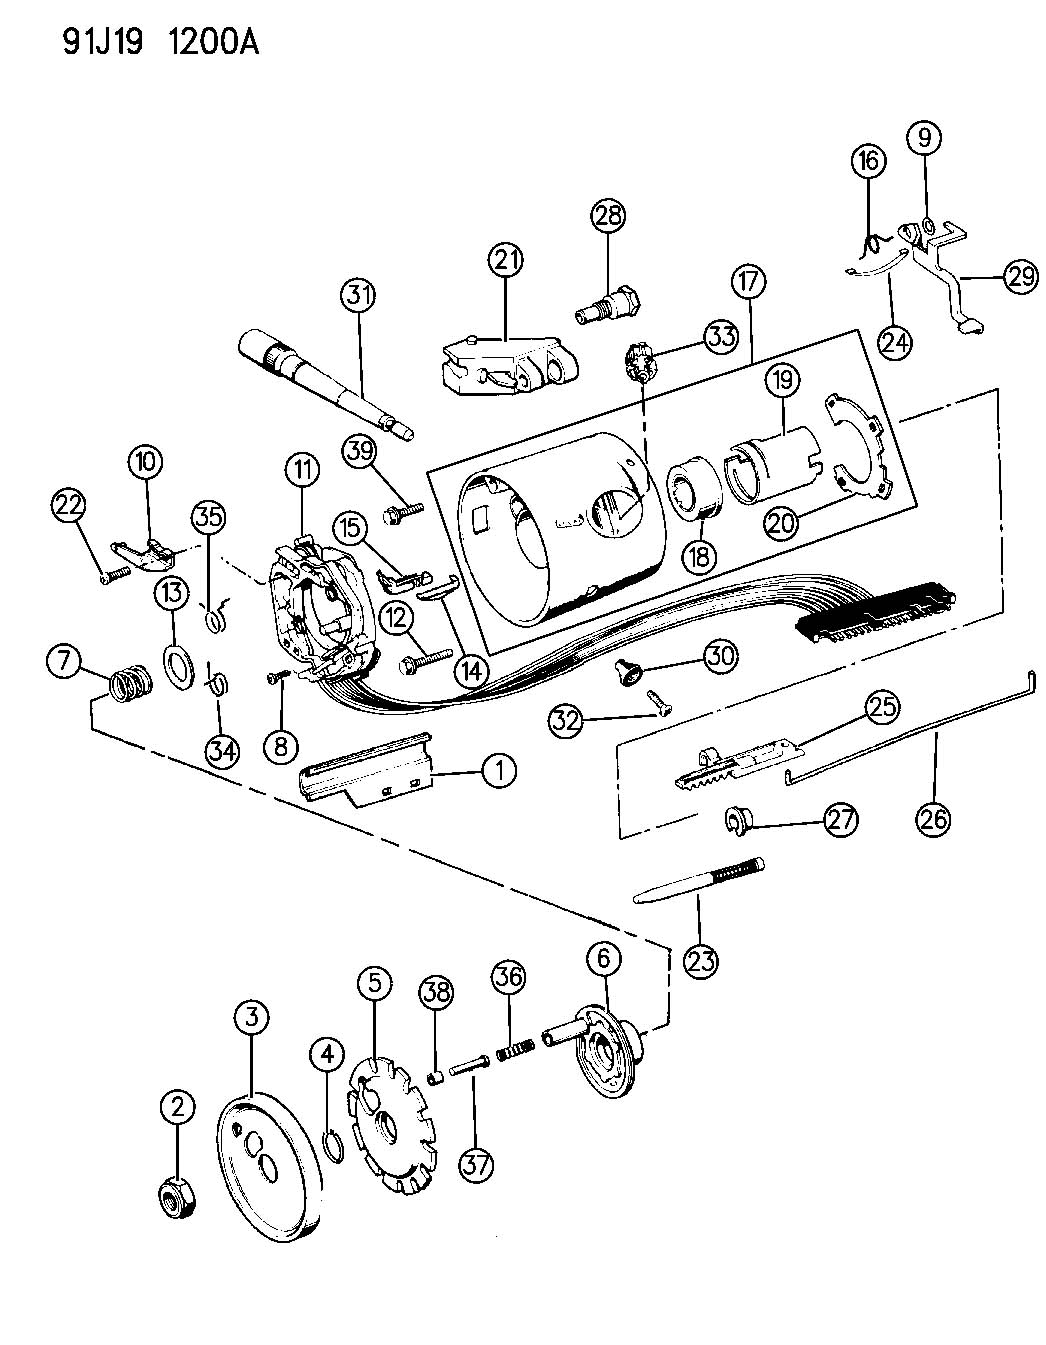 74 ford steering column diagram free download wiring diagram